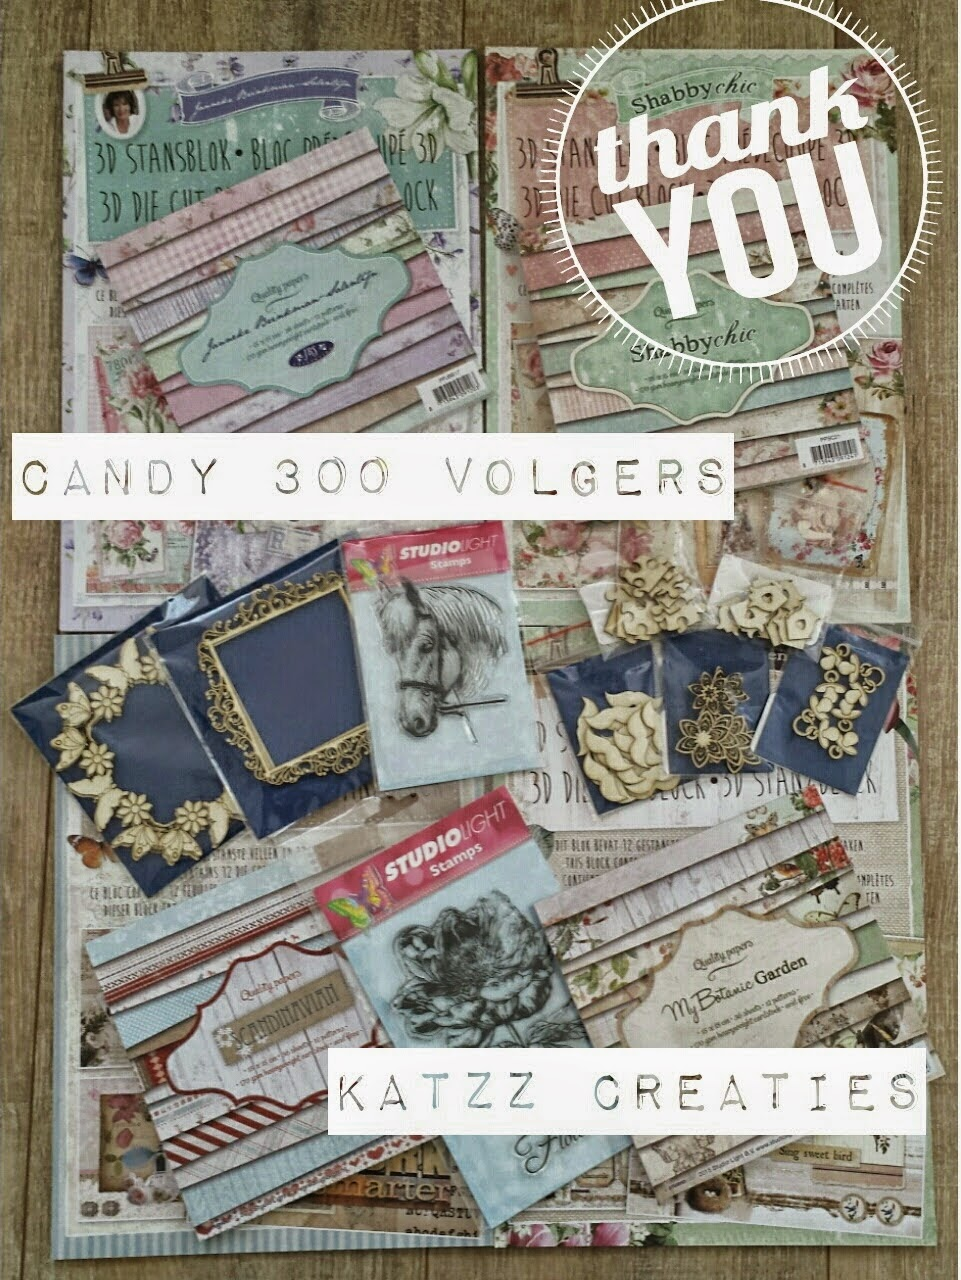 Super gave candy bij Katzz creaties!